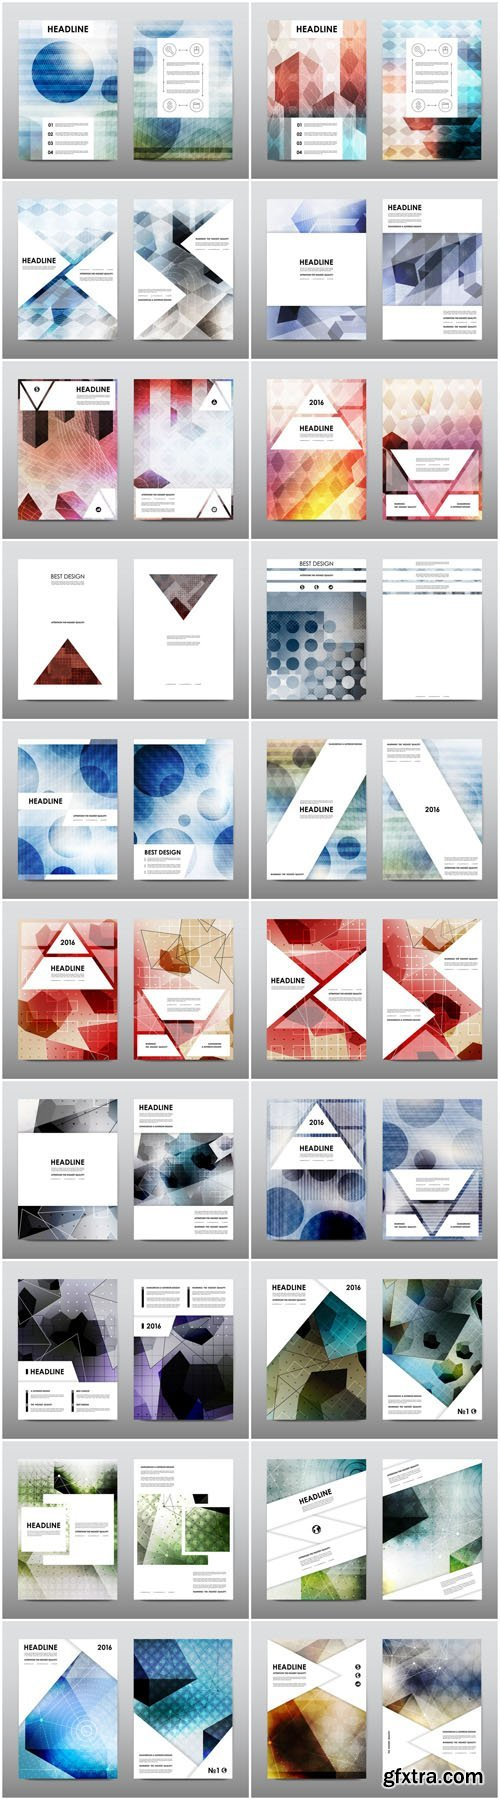 Magazine booklet cover, brochure layout template & abstract flyer design 6 - 20xEPS Vector Stock